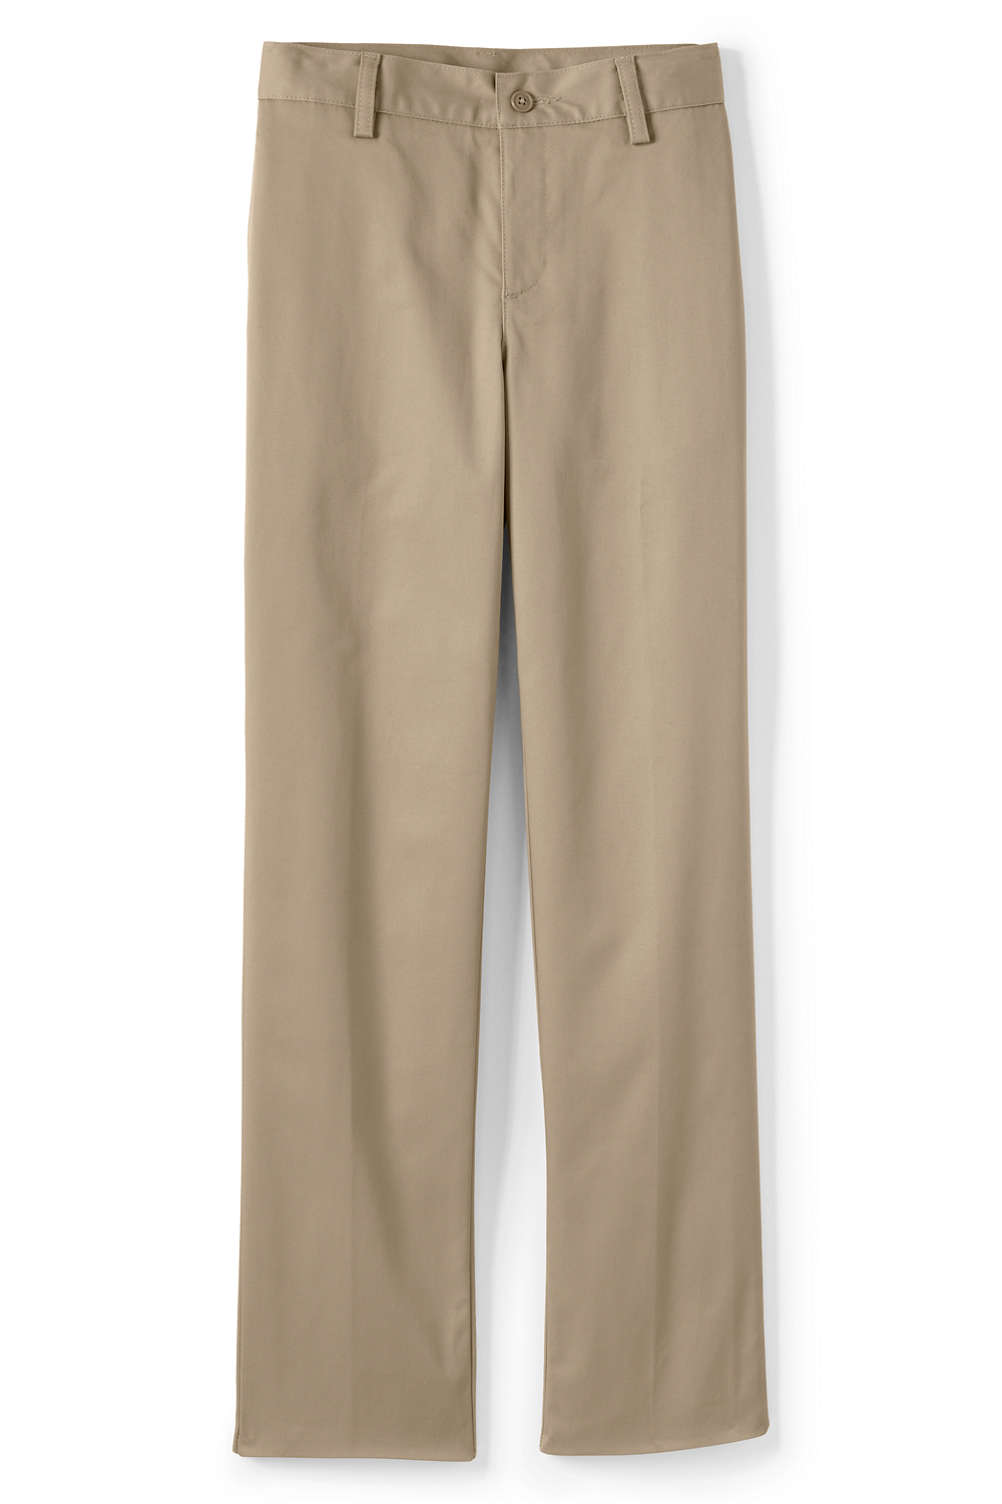 a80315ffb Boys Plain Front Iron Knee Blend Chino Pants from Lands' End